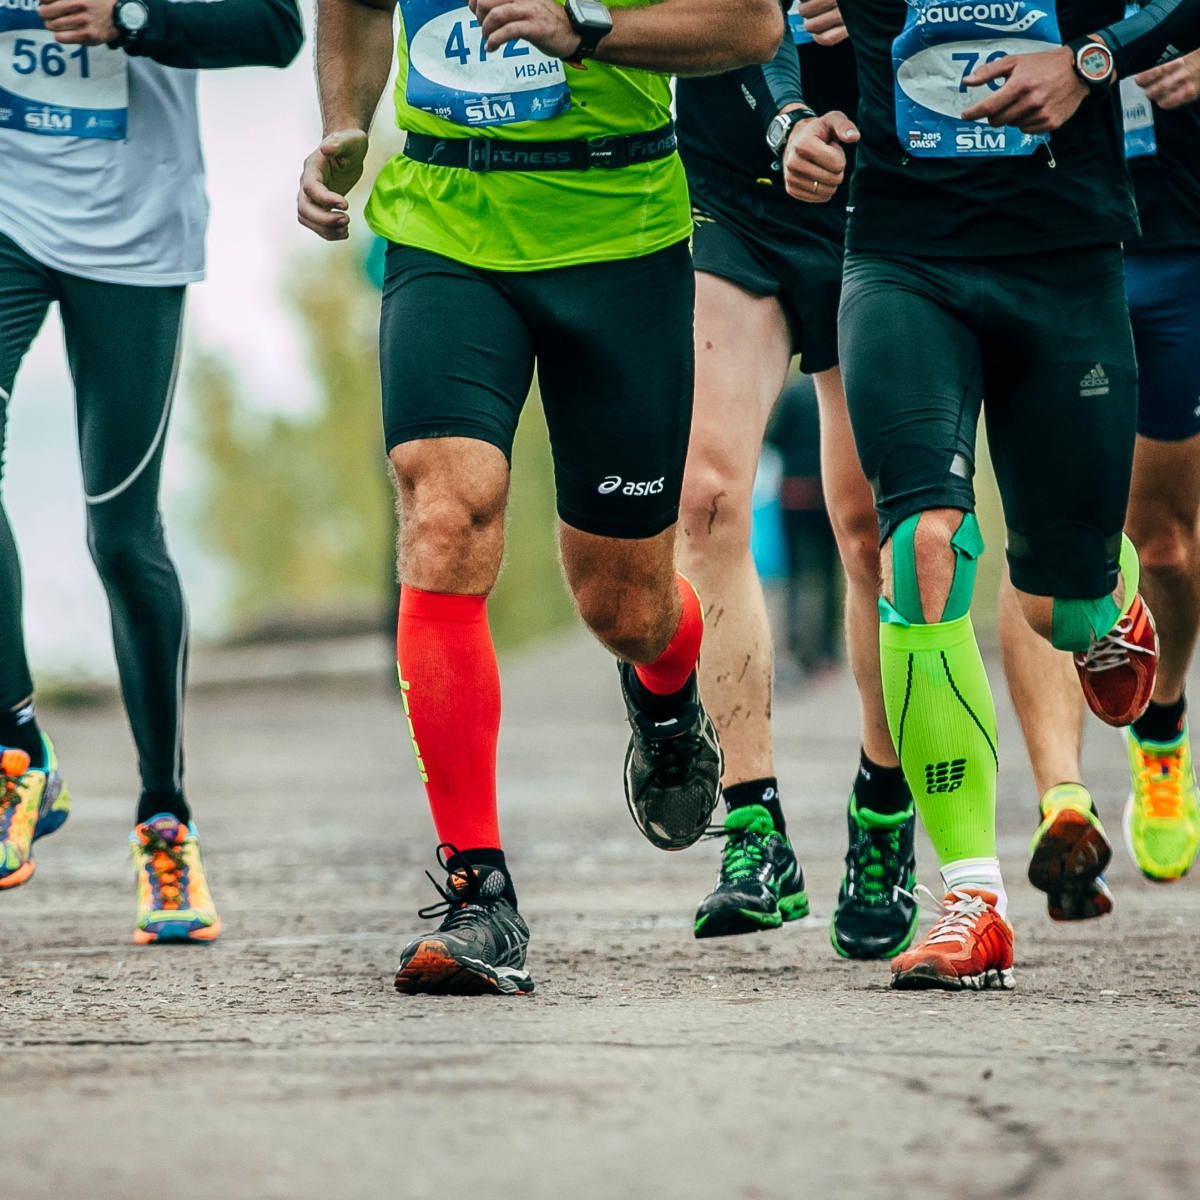 4abf19419b Should You Buy Compression Gear? - Men's Journal